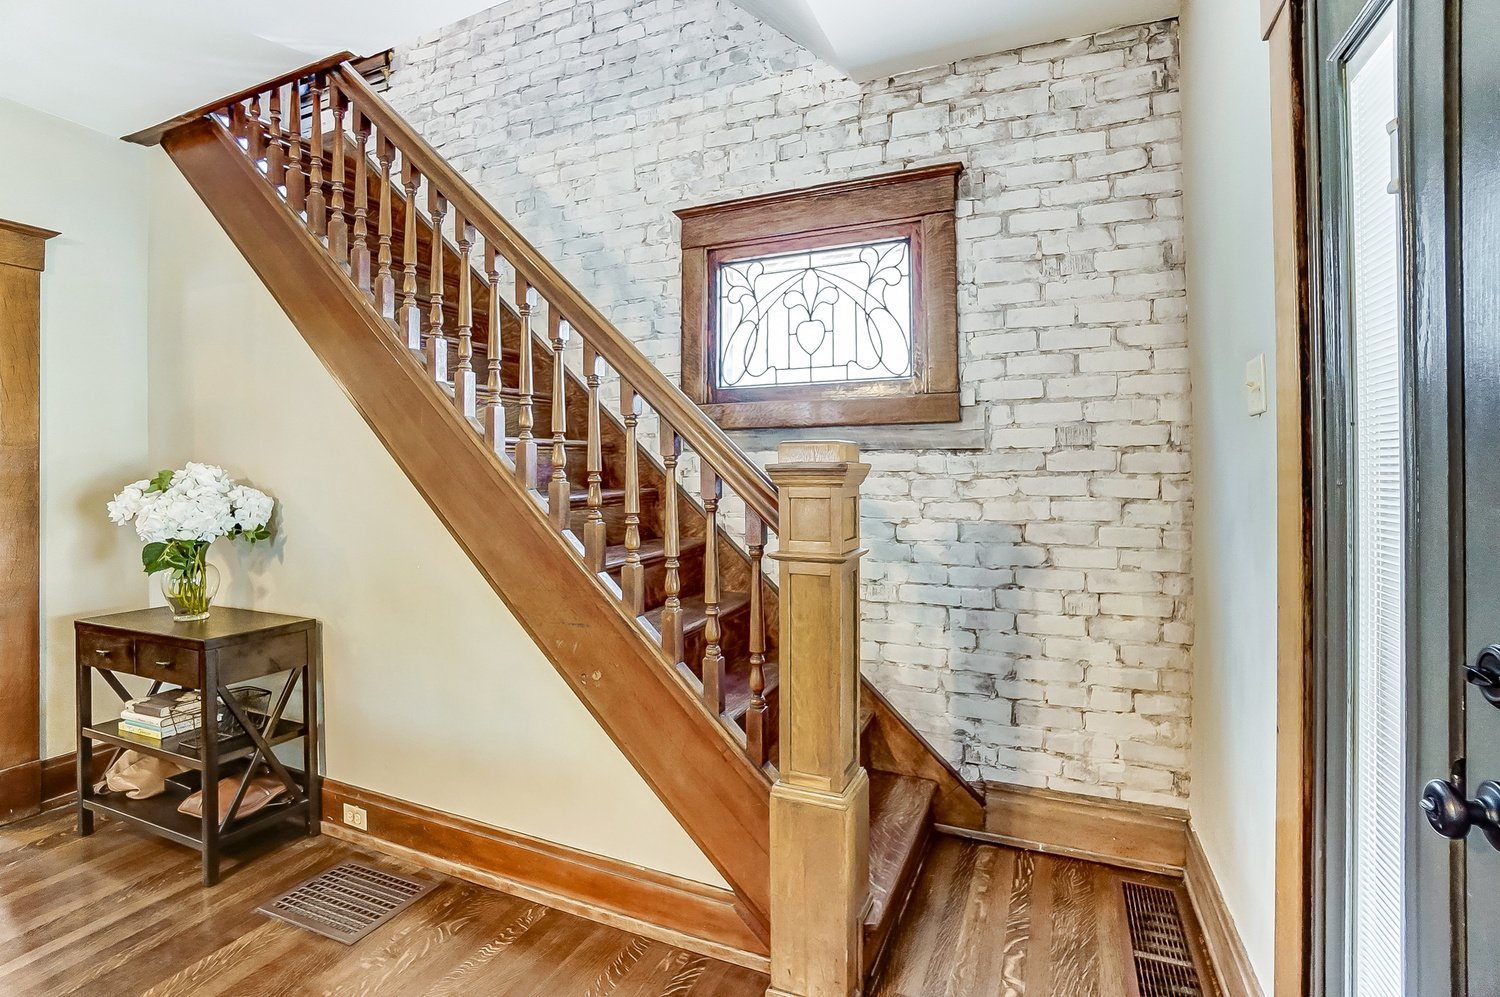 Home for Sale in Cincinnati with Open House Sunday!